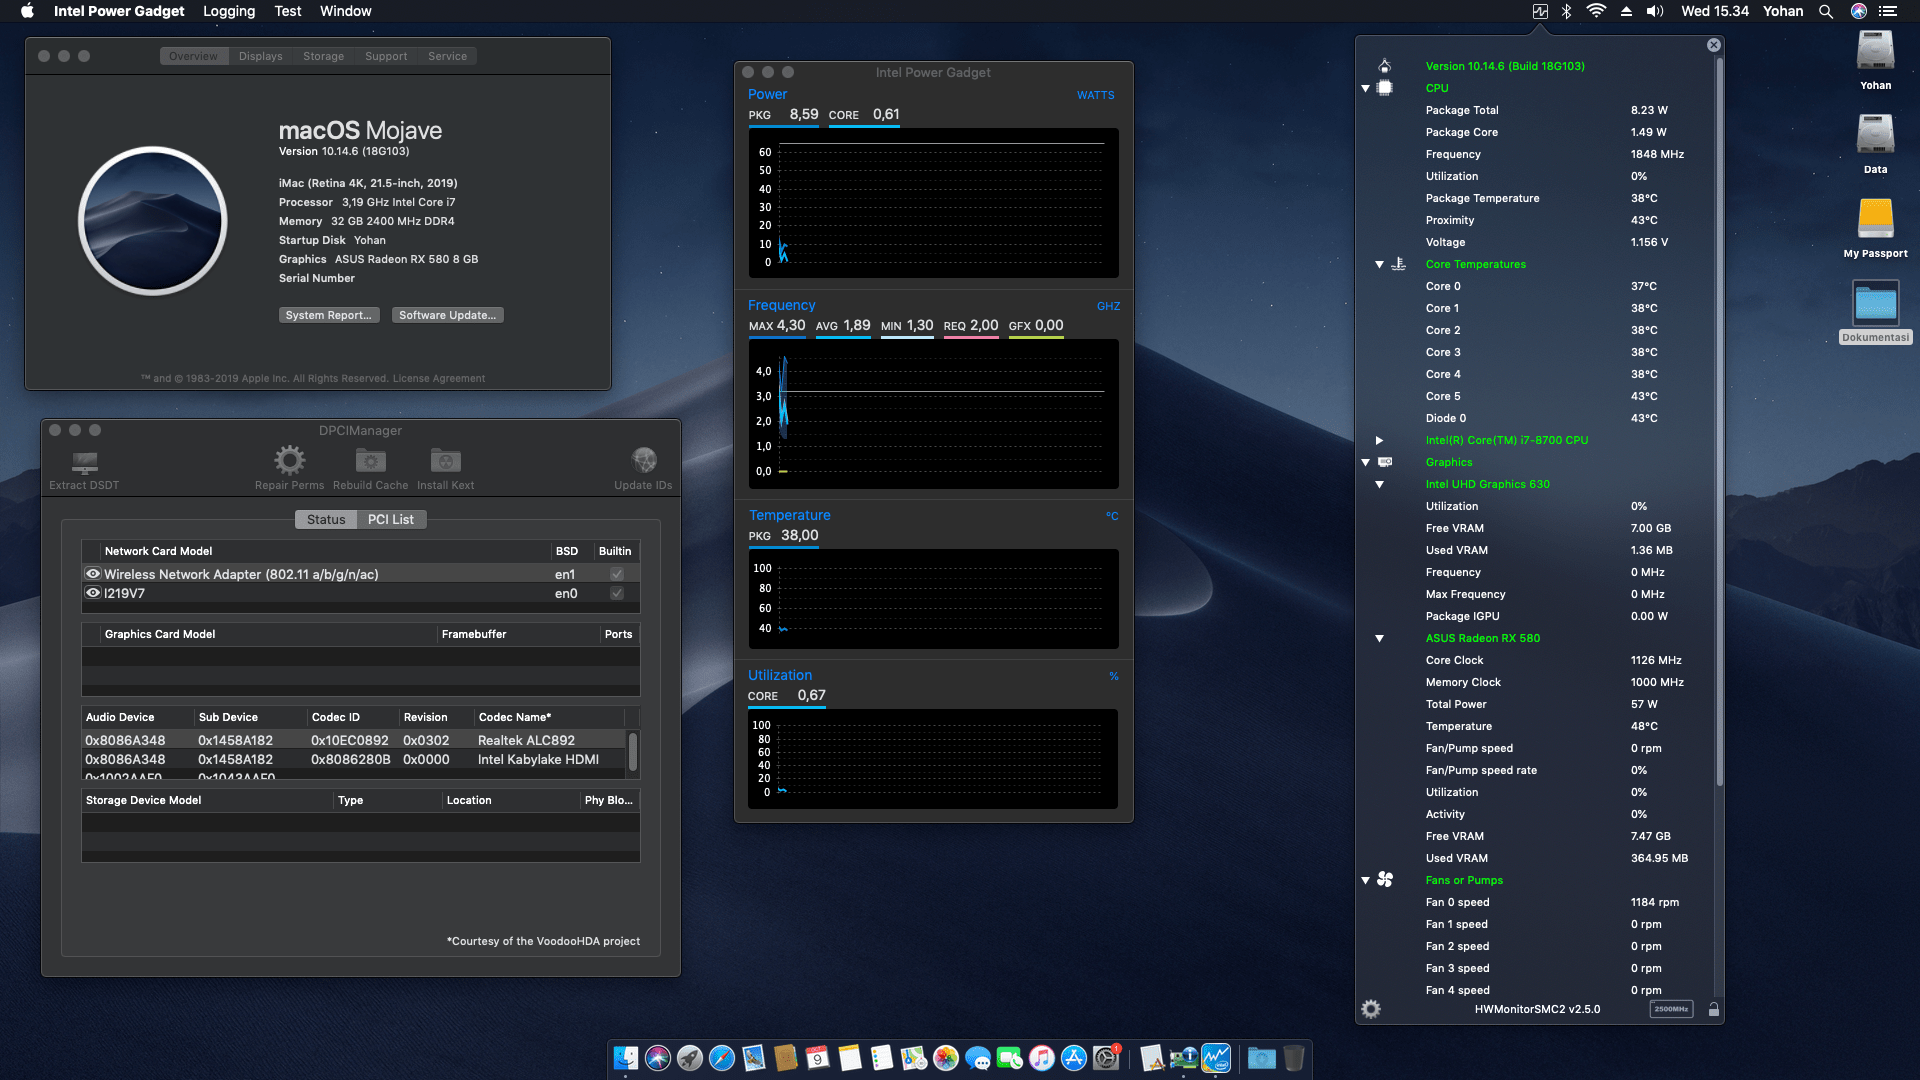 Success Hackintosh macOS Mojave 10.14.6 Build 18G103 at Gigabyte Z390 M + Intel Core i7 8700 + ASUS RX 580